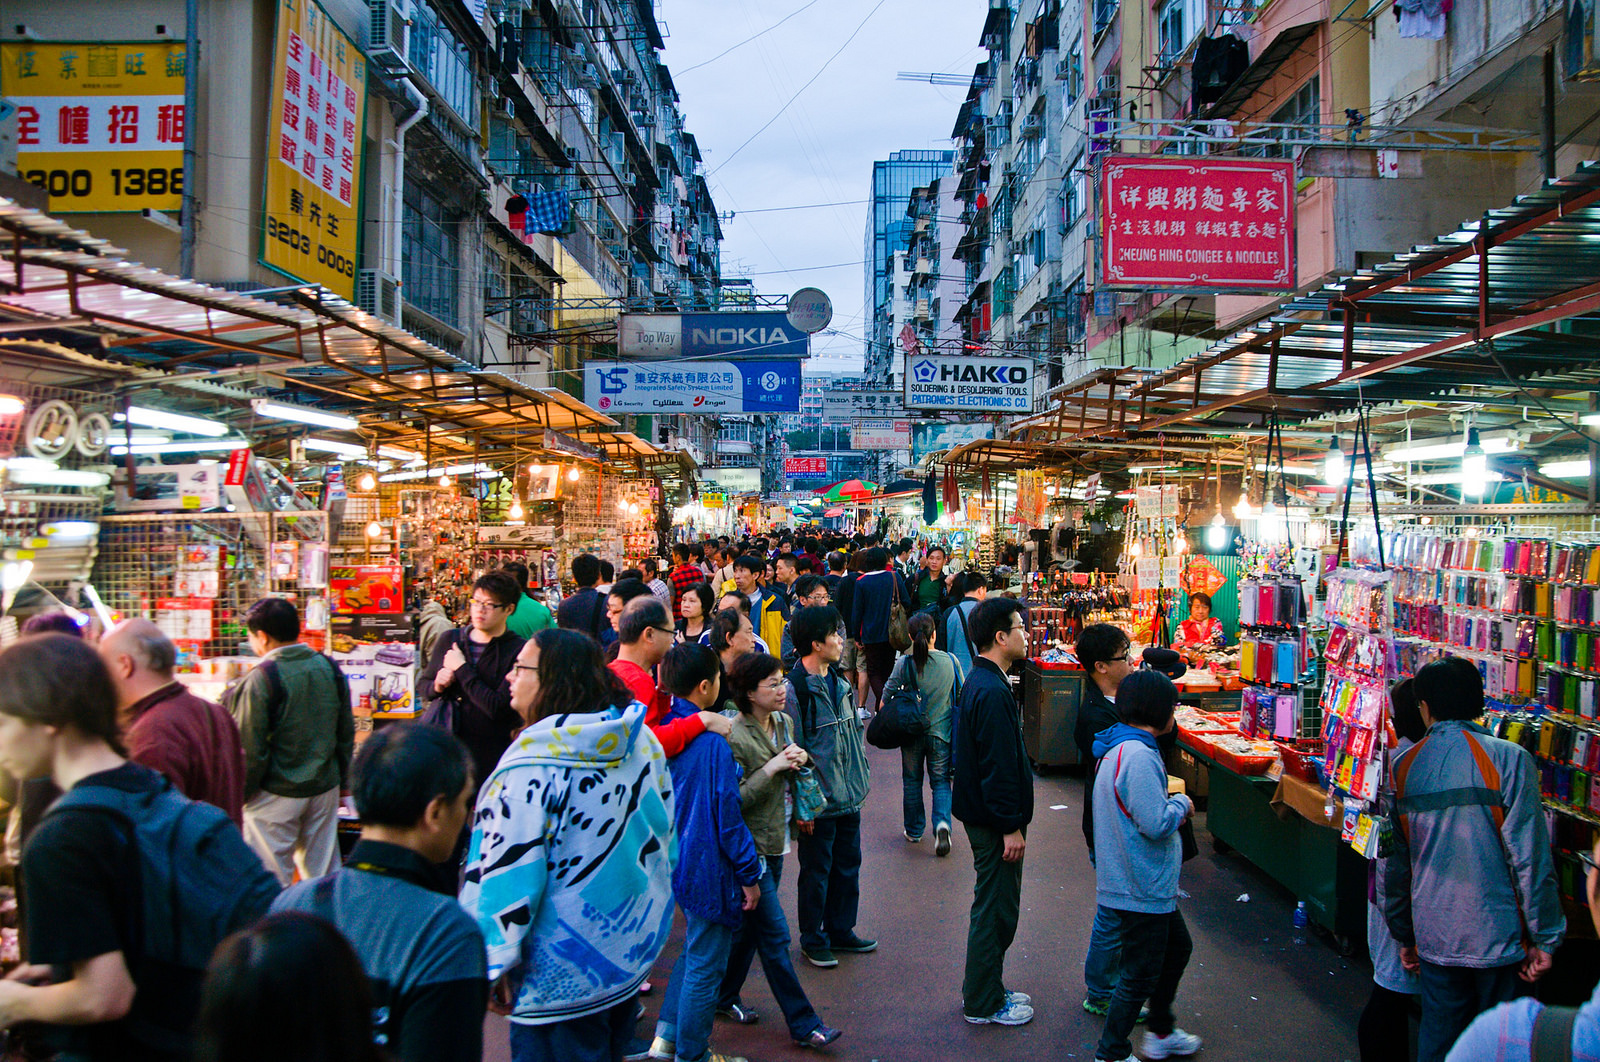 Sassy Hong Kong is the go-to guide for girls in the city that truly never sleeps. From al fresco bars and hole-in-the-wall restaurants, to secret shopping spots and special events, we pound the pavements in search of all the best Hong Kong has to offer.